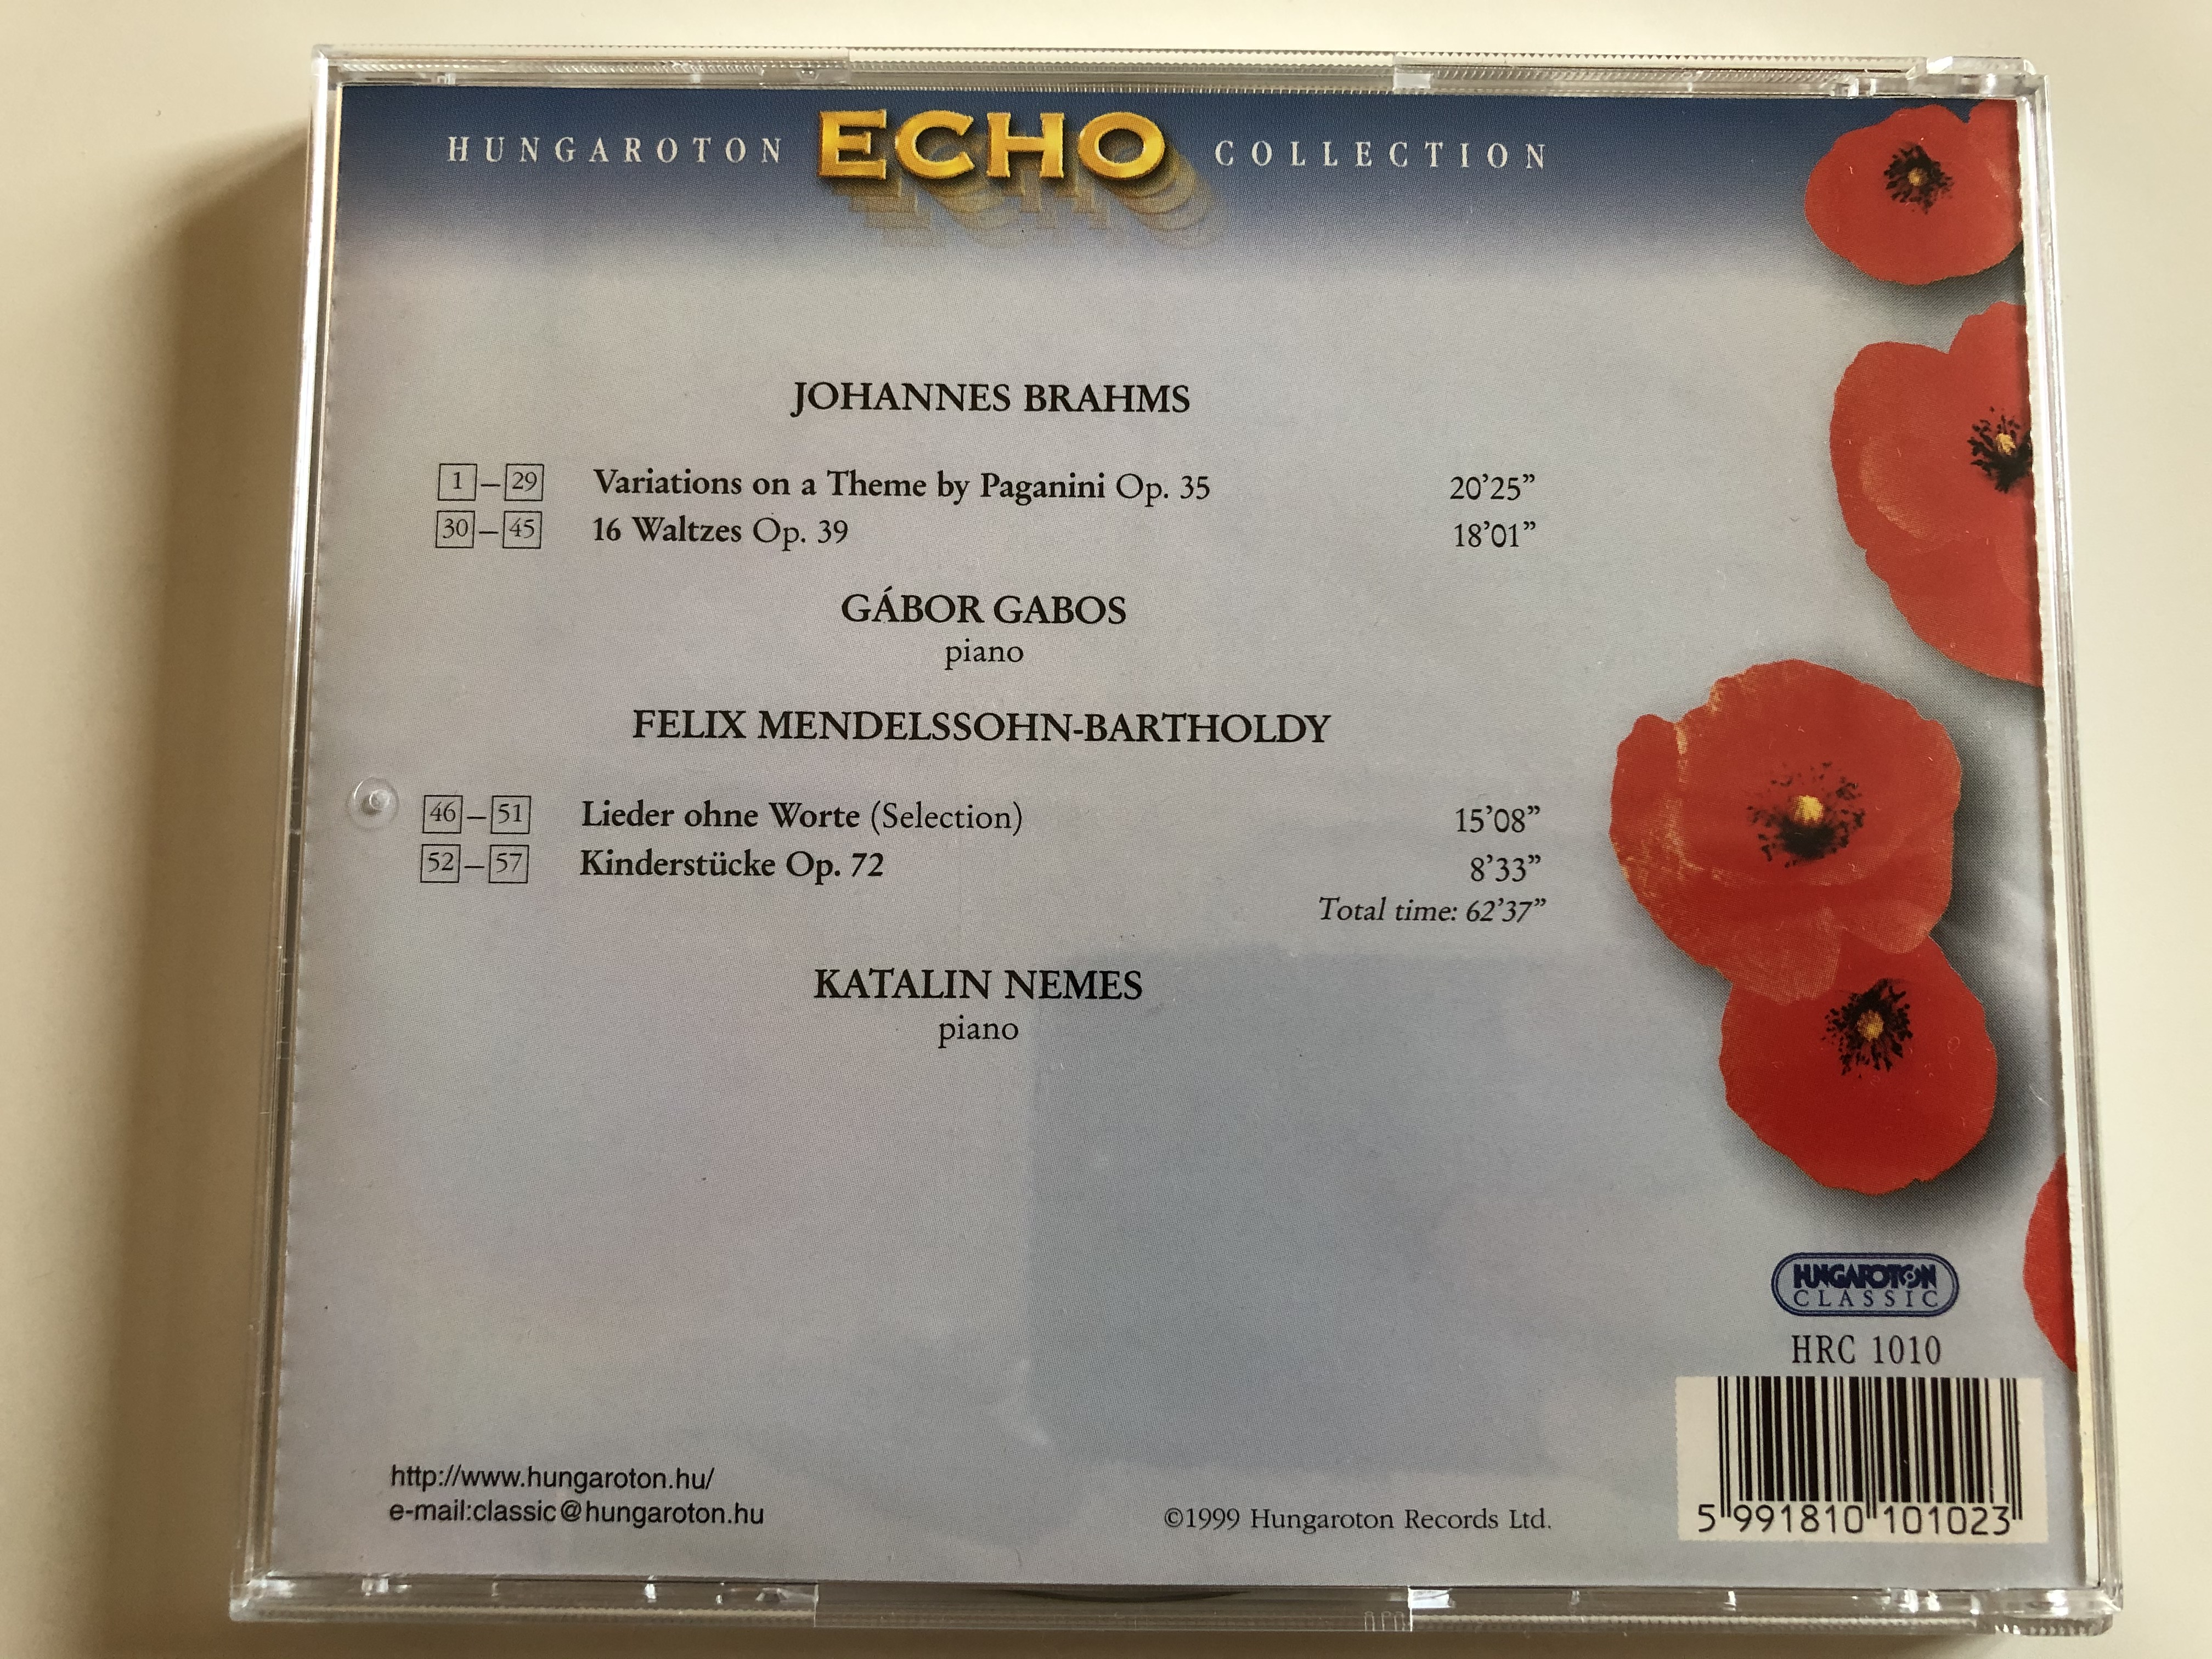 brahms-variations-on-a-theme-by-paganini-16-waltzes-mendelssohn-lieder-ohne-worte-kinderst-cke-g-bor-gabos-katalin-nemes-piano-hungaroton-audio-cd-1999-stereo-hrc-1010-5-.jpg